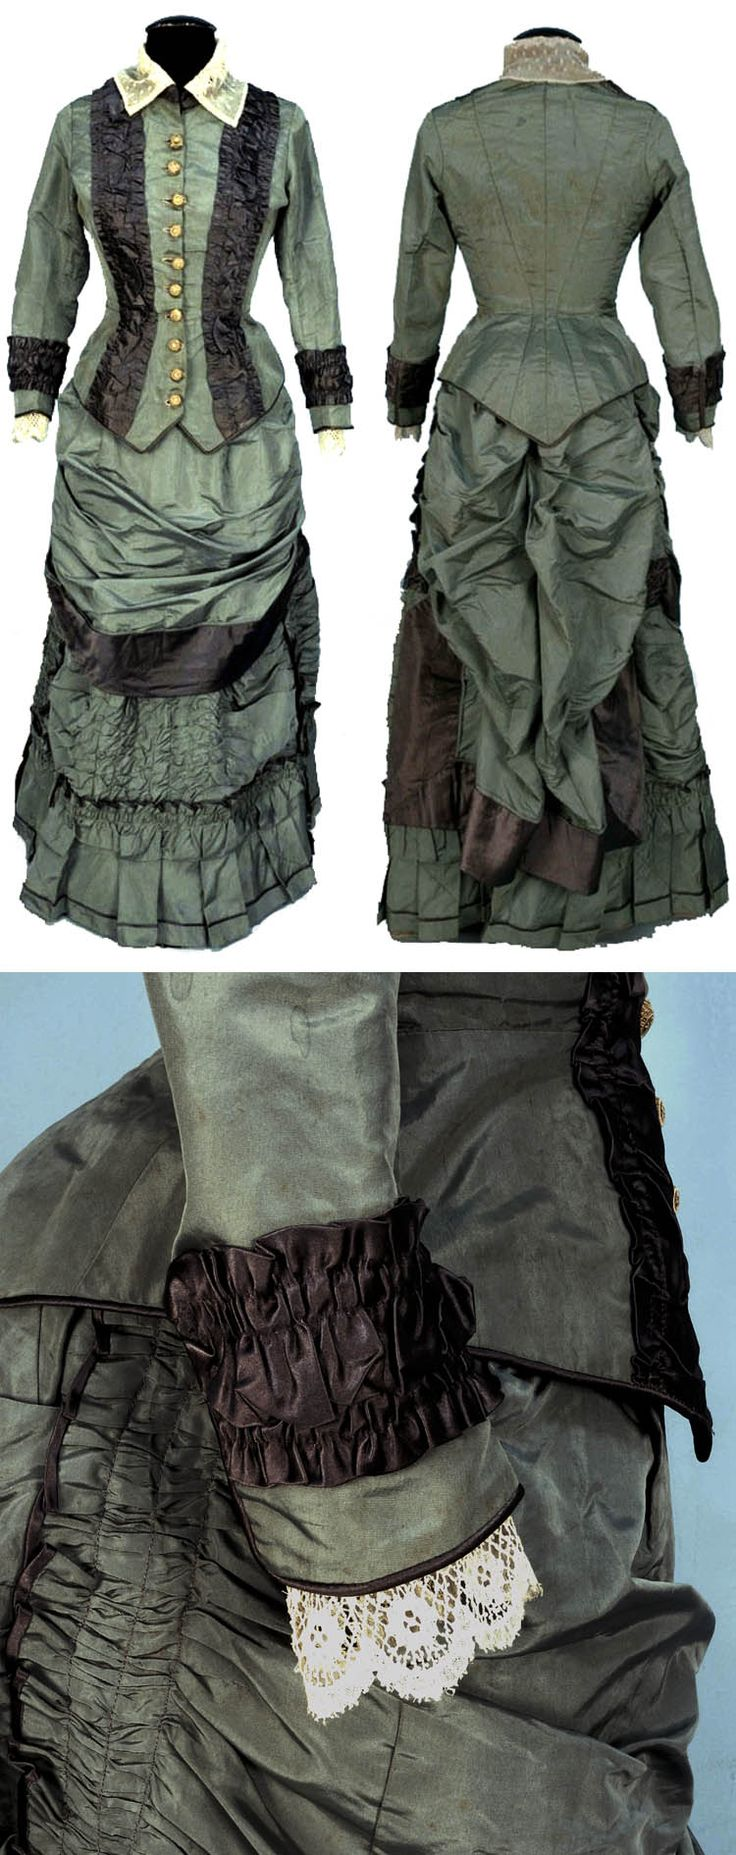 Two-piece sage faille day dress with gray satin bands, 1874. Semi-boned bodice with dorset buttons, stand collar, and lace-trimmed cuffs. Skirt decorated with ruching and pleats. Whitaker Auctions/Live Auctioneers